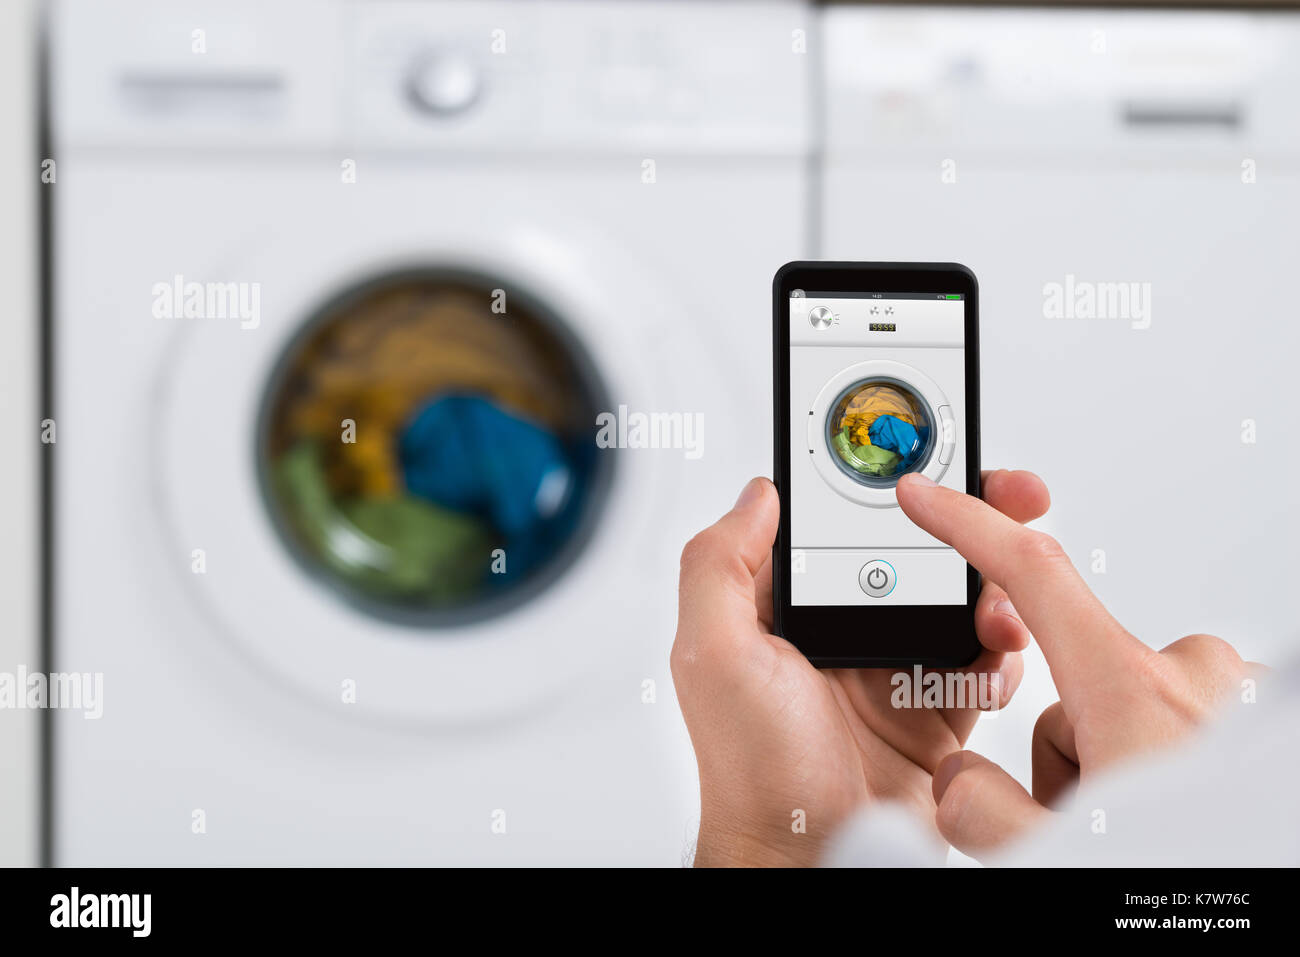 Close-up Of Person Hands Using Mobile Phone To Operate Washing Machine Appliance At Home - Stock Image